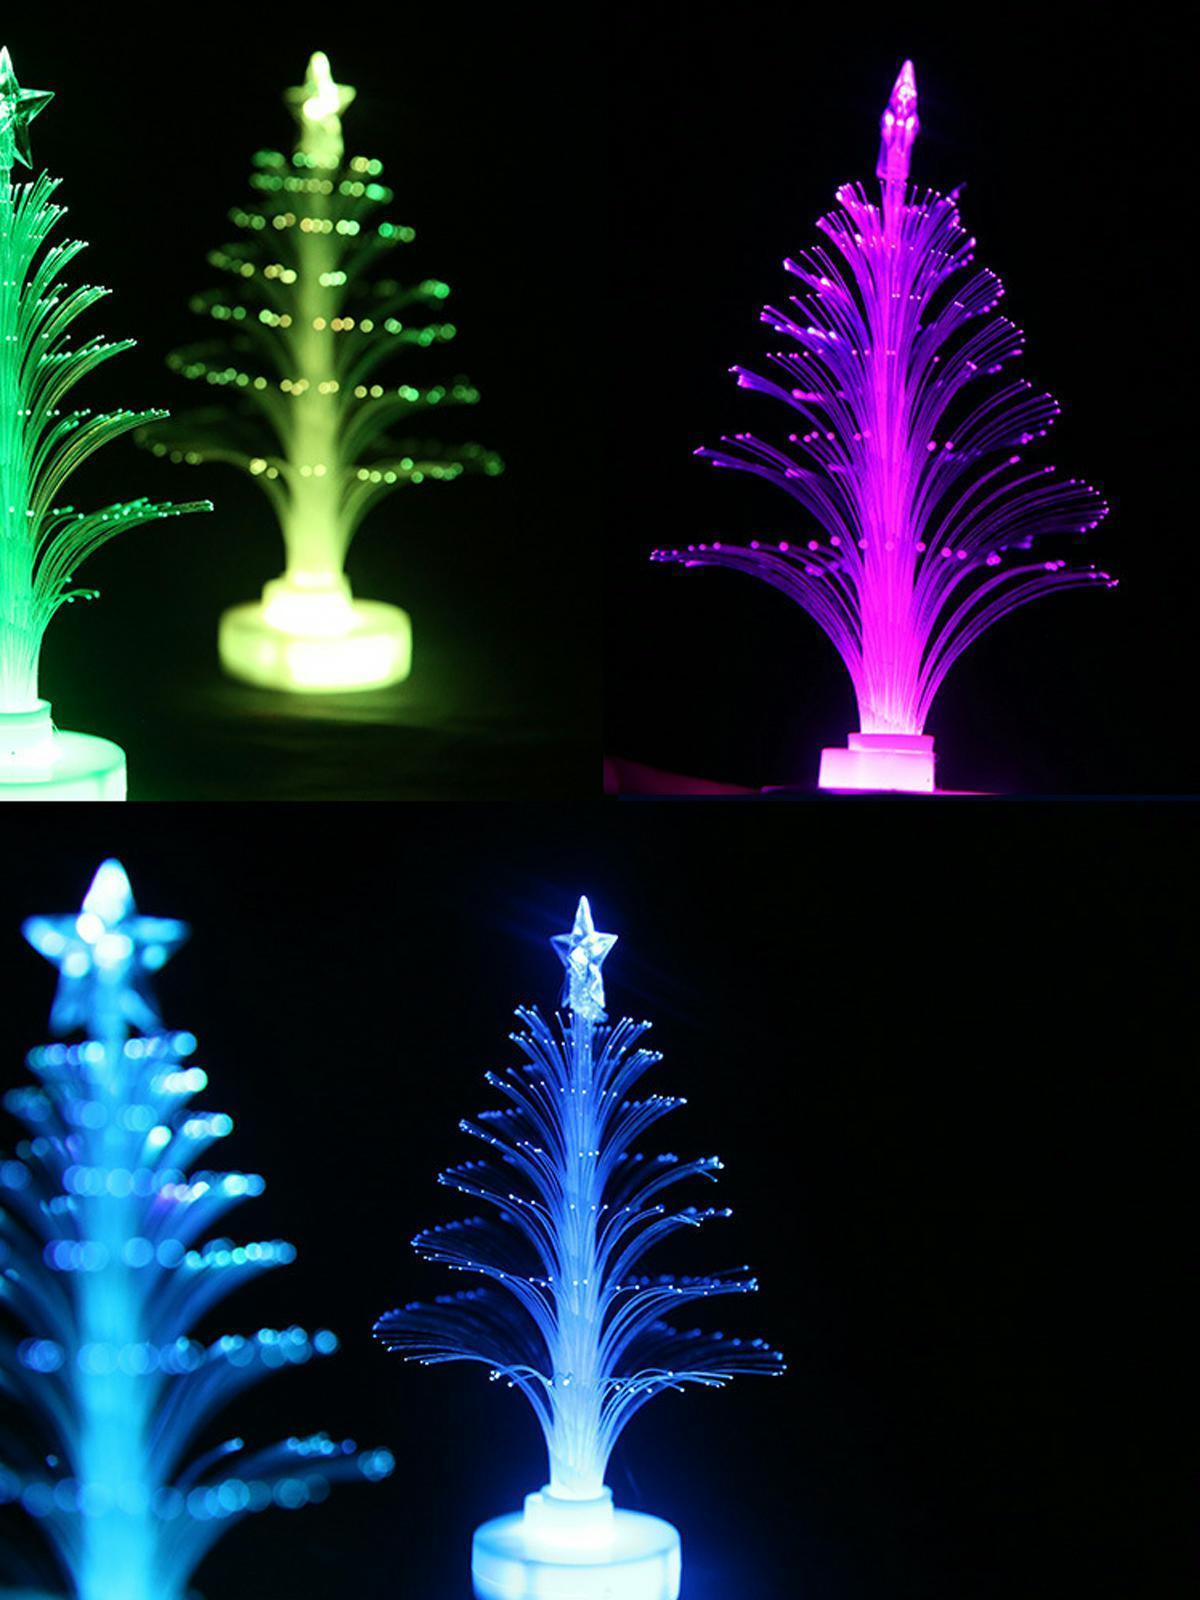 Christmas Fiber Led Optic Light Lamp Changing Color Xmas Tree Decor Ornament New